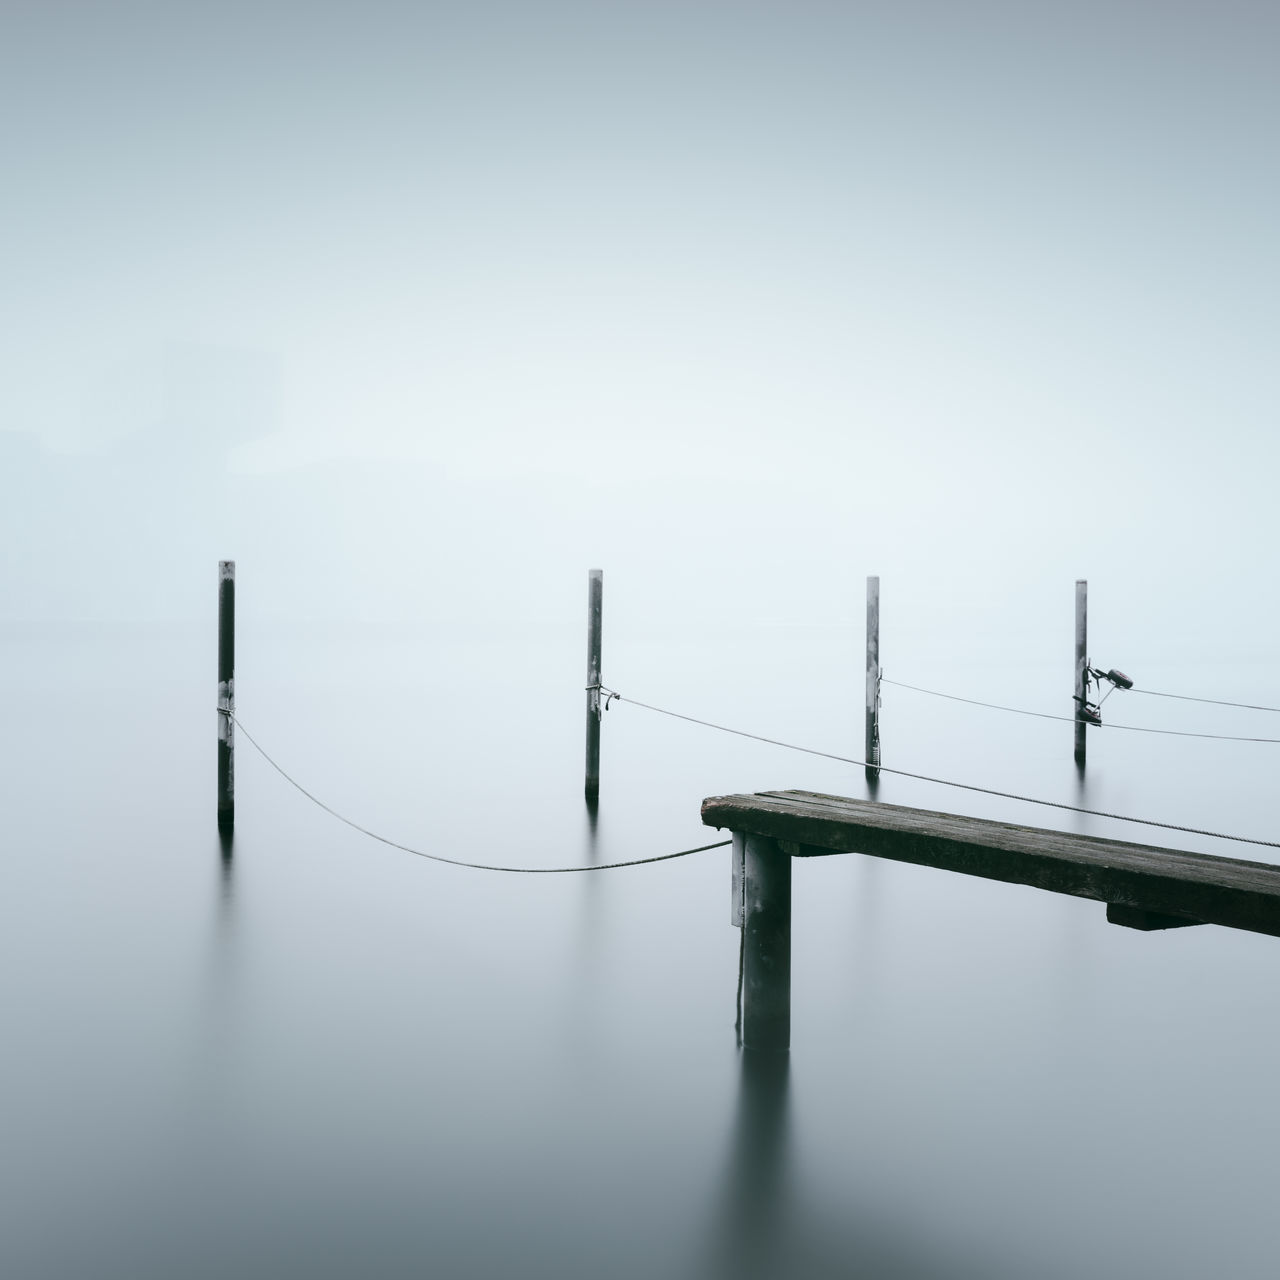 pier against sky during foggy weather Beauty In Nature Berlin Day Fine Art Fog Germany Horizon Over Water Long Exposure Muted Colors Nature No People Outdoors Philipp Dase Pier Scenics Sea Sky Tranquility Water Waterfront